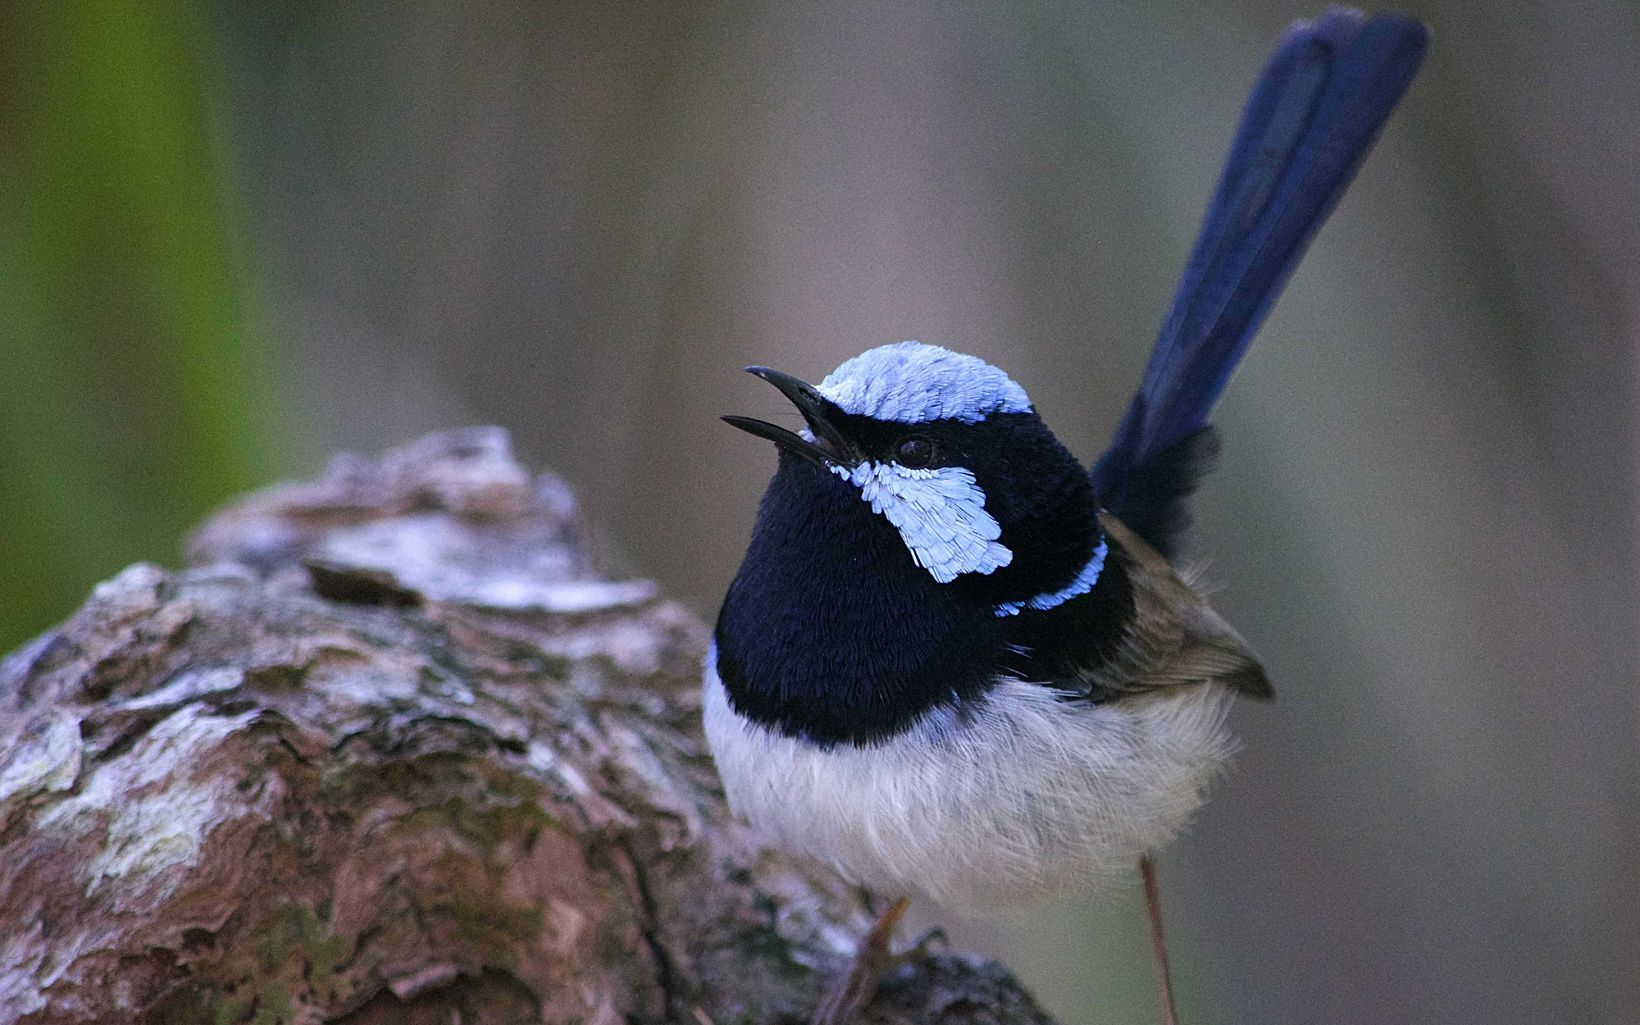 Superb Fairy-Wren, black-and-white bird native to Melbourne